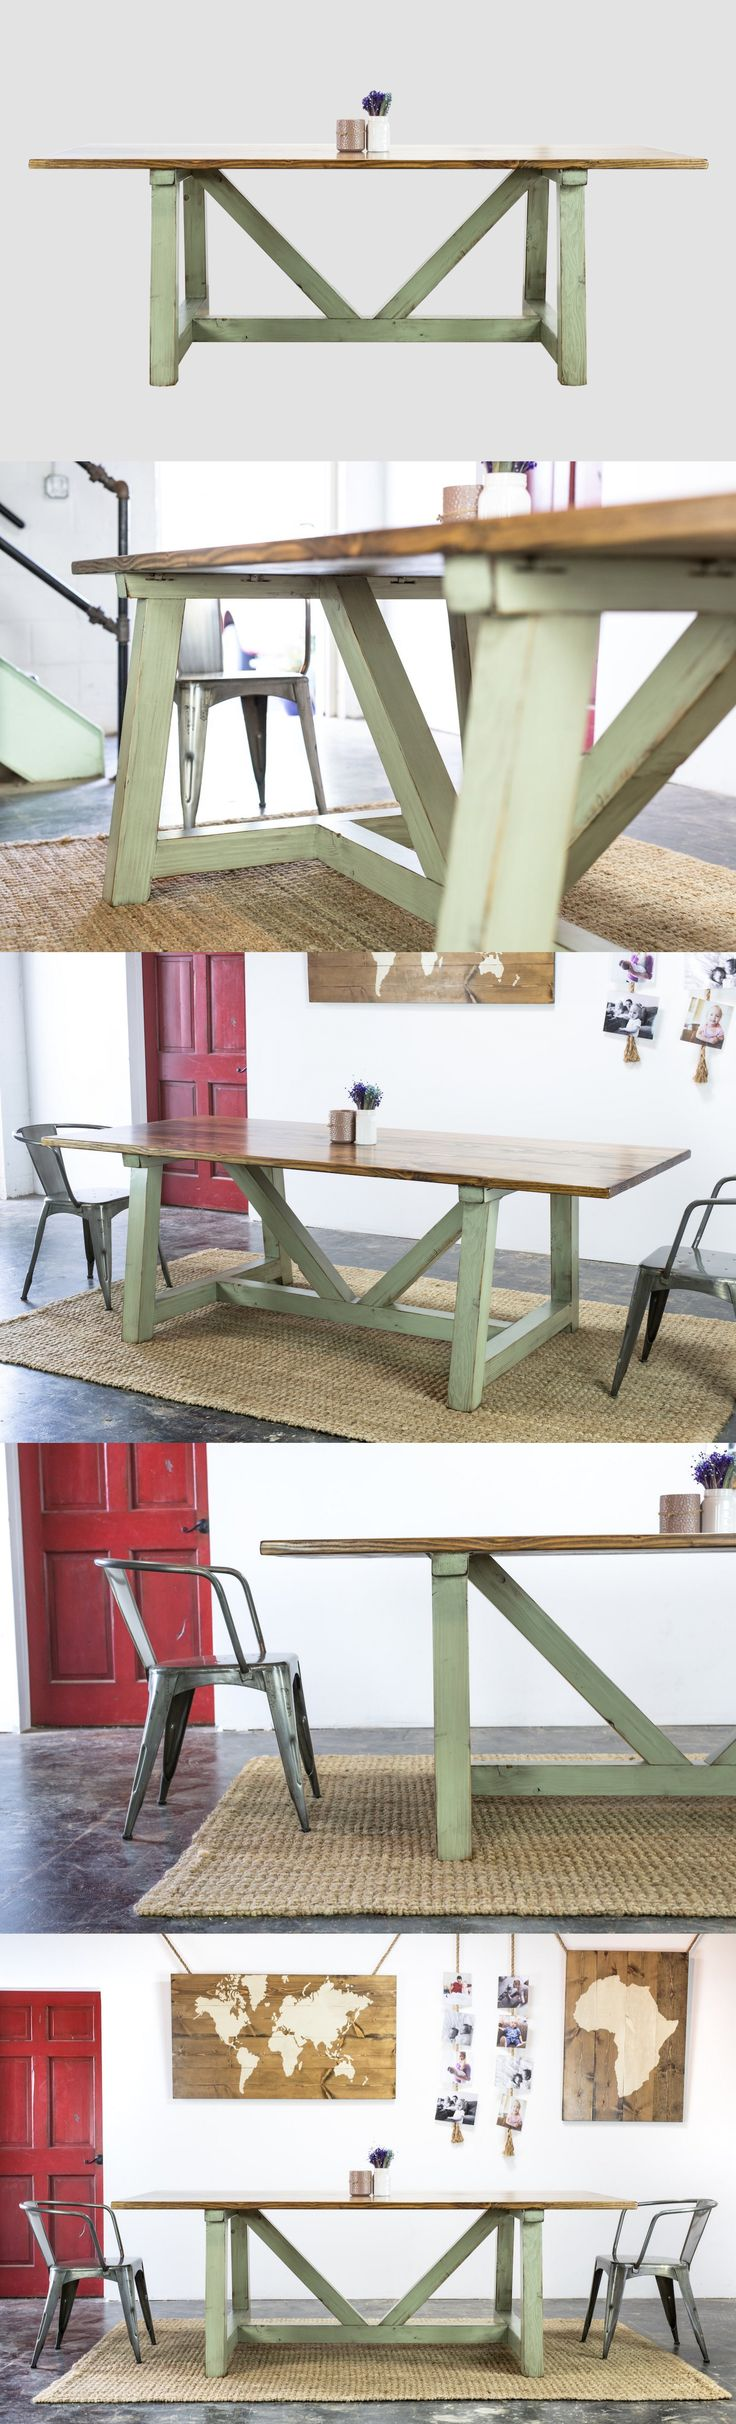 Kijiji Kitchener Waterloo Furniture 17 Best Ideas About Harvest Tables On Pinterest Farm Tables